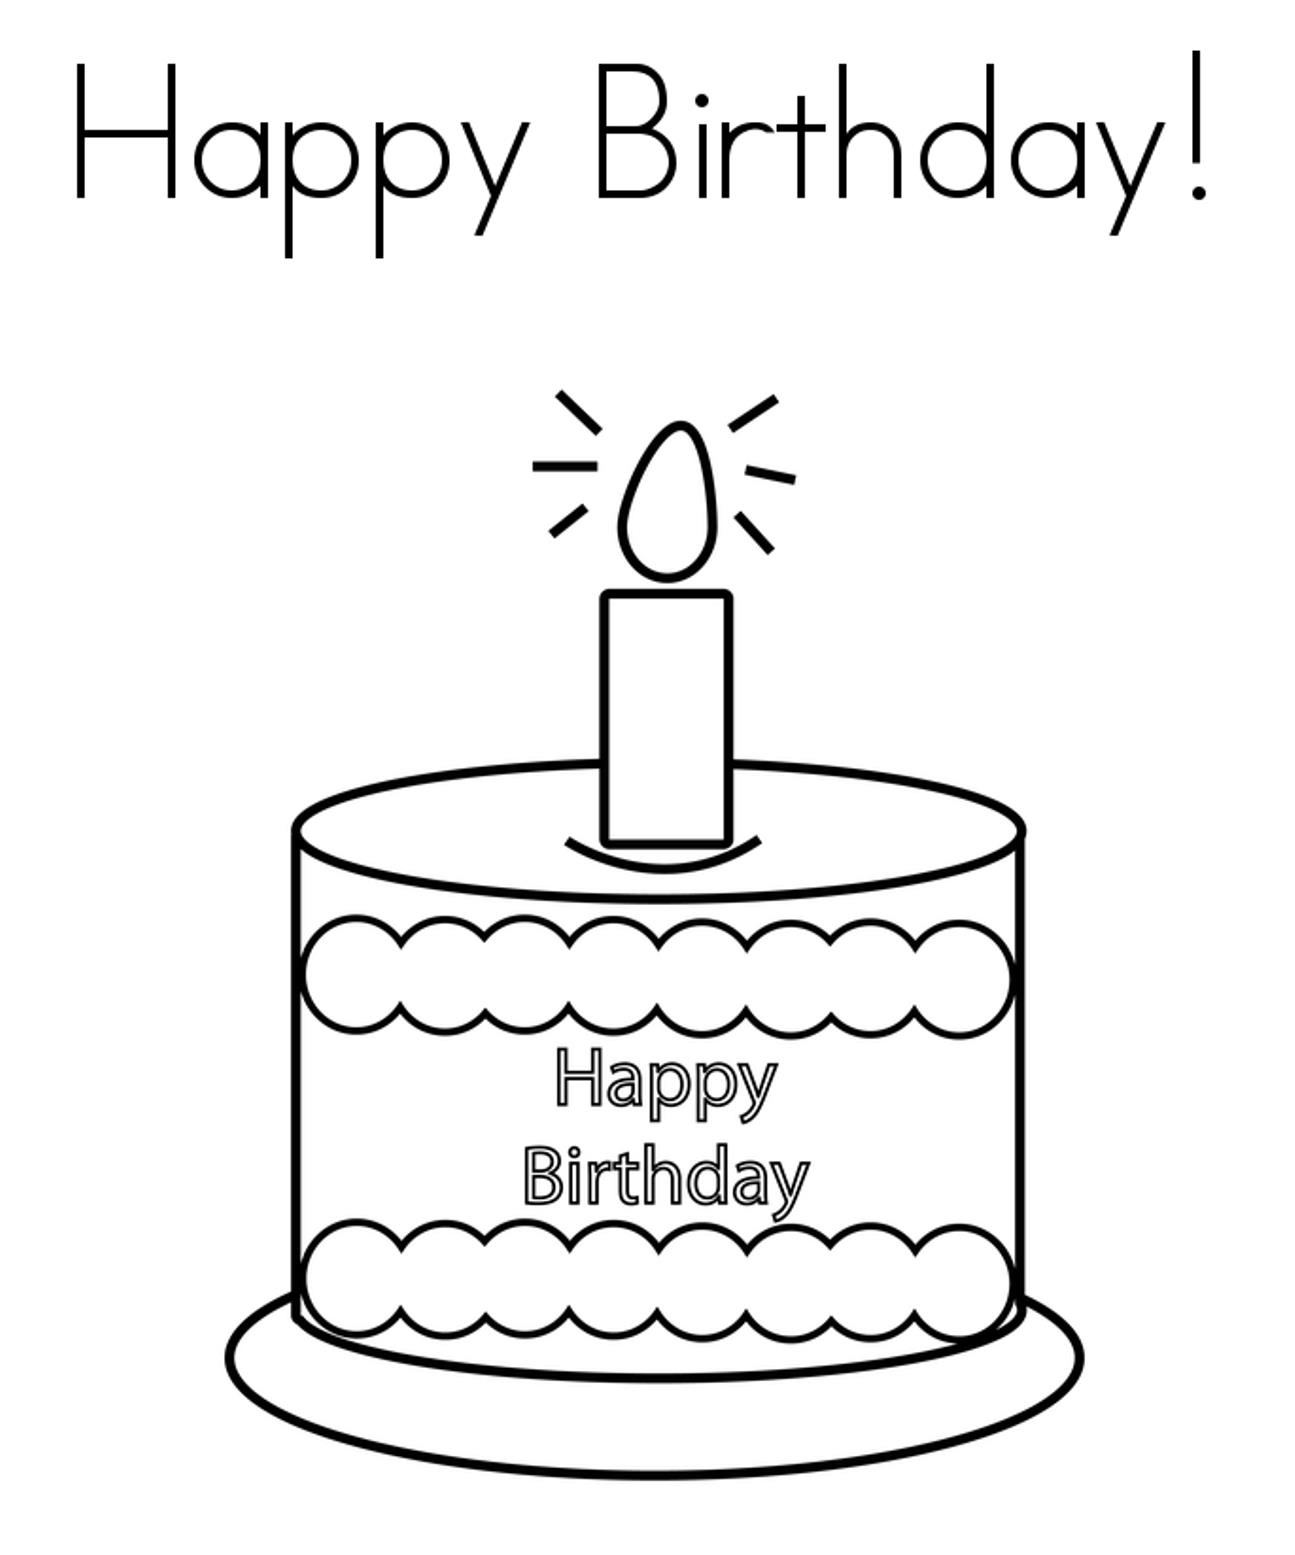 birthday cake coloring sheet ; coloring-book-birthdayke-pages-ofkecoloring-happy-page